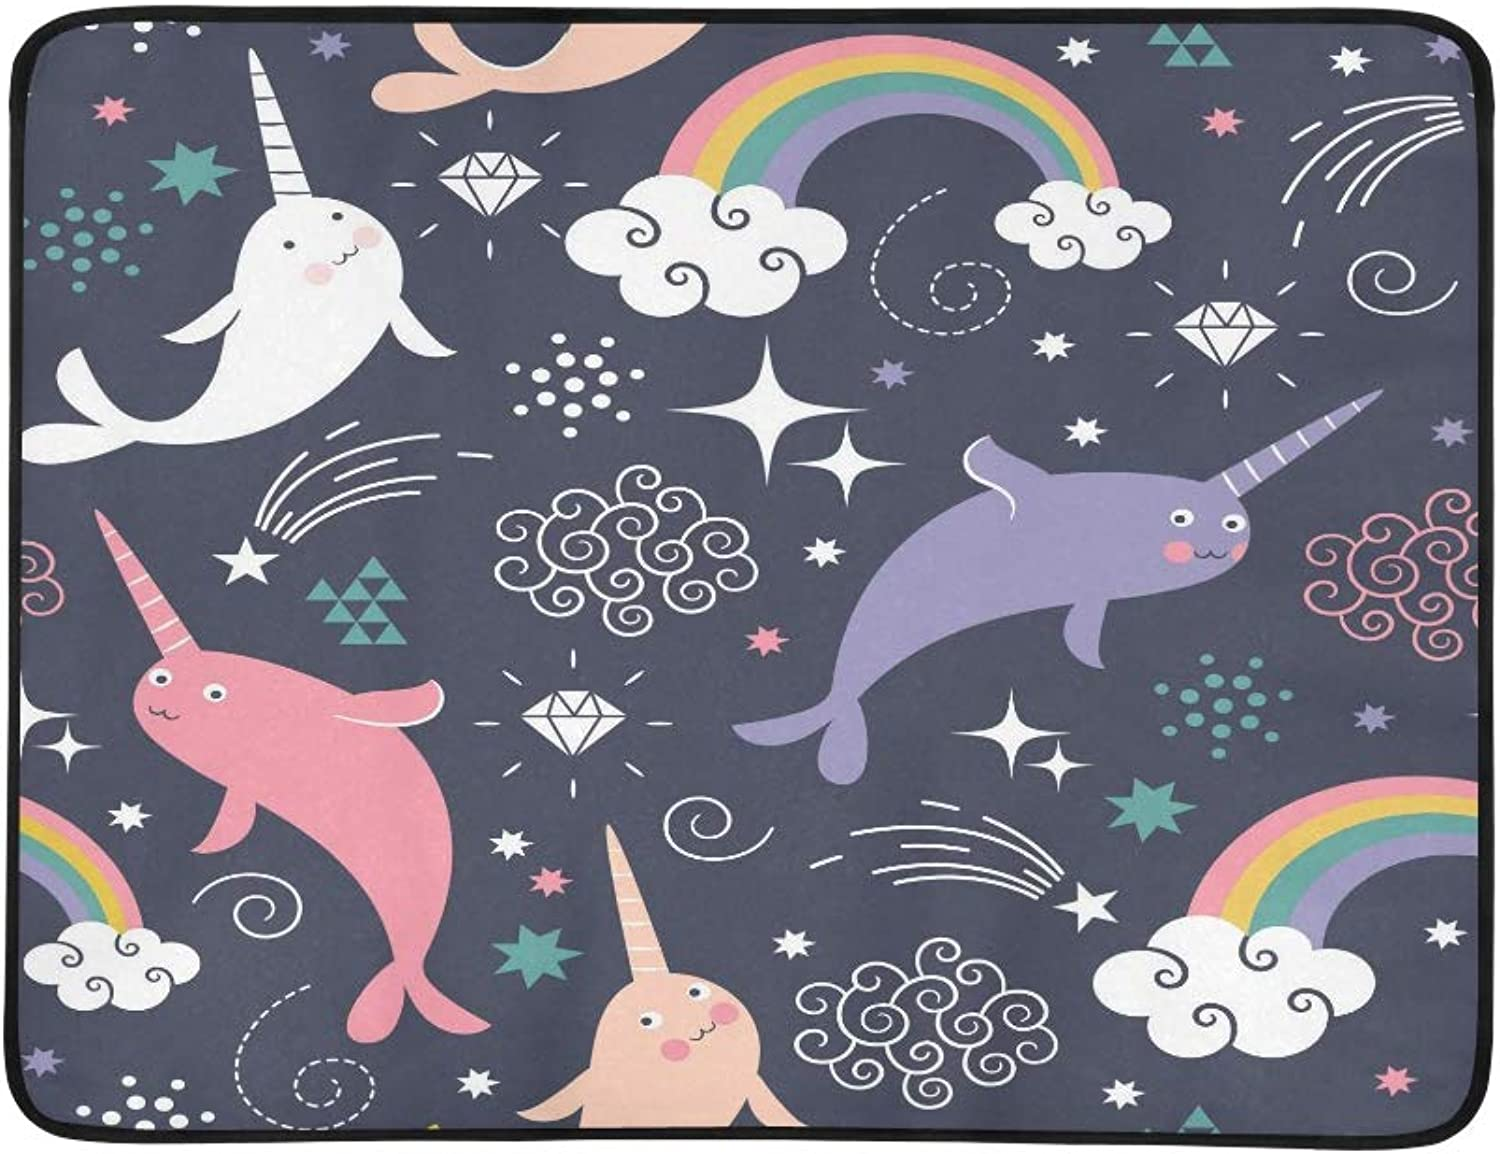 Cute Narwhal Unicorn Fish Dark blueee Pattern Portable and Foldable Blanket Mat 60x78 Inch Handy Mat for Camping Picnic Beach Indoor Outdoor Travel